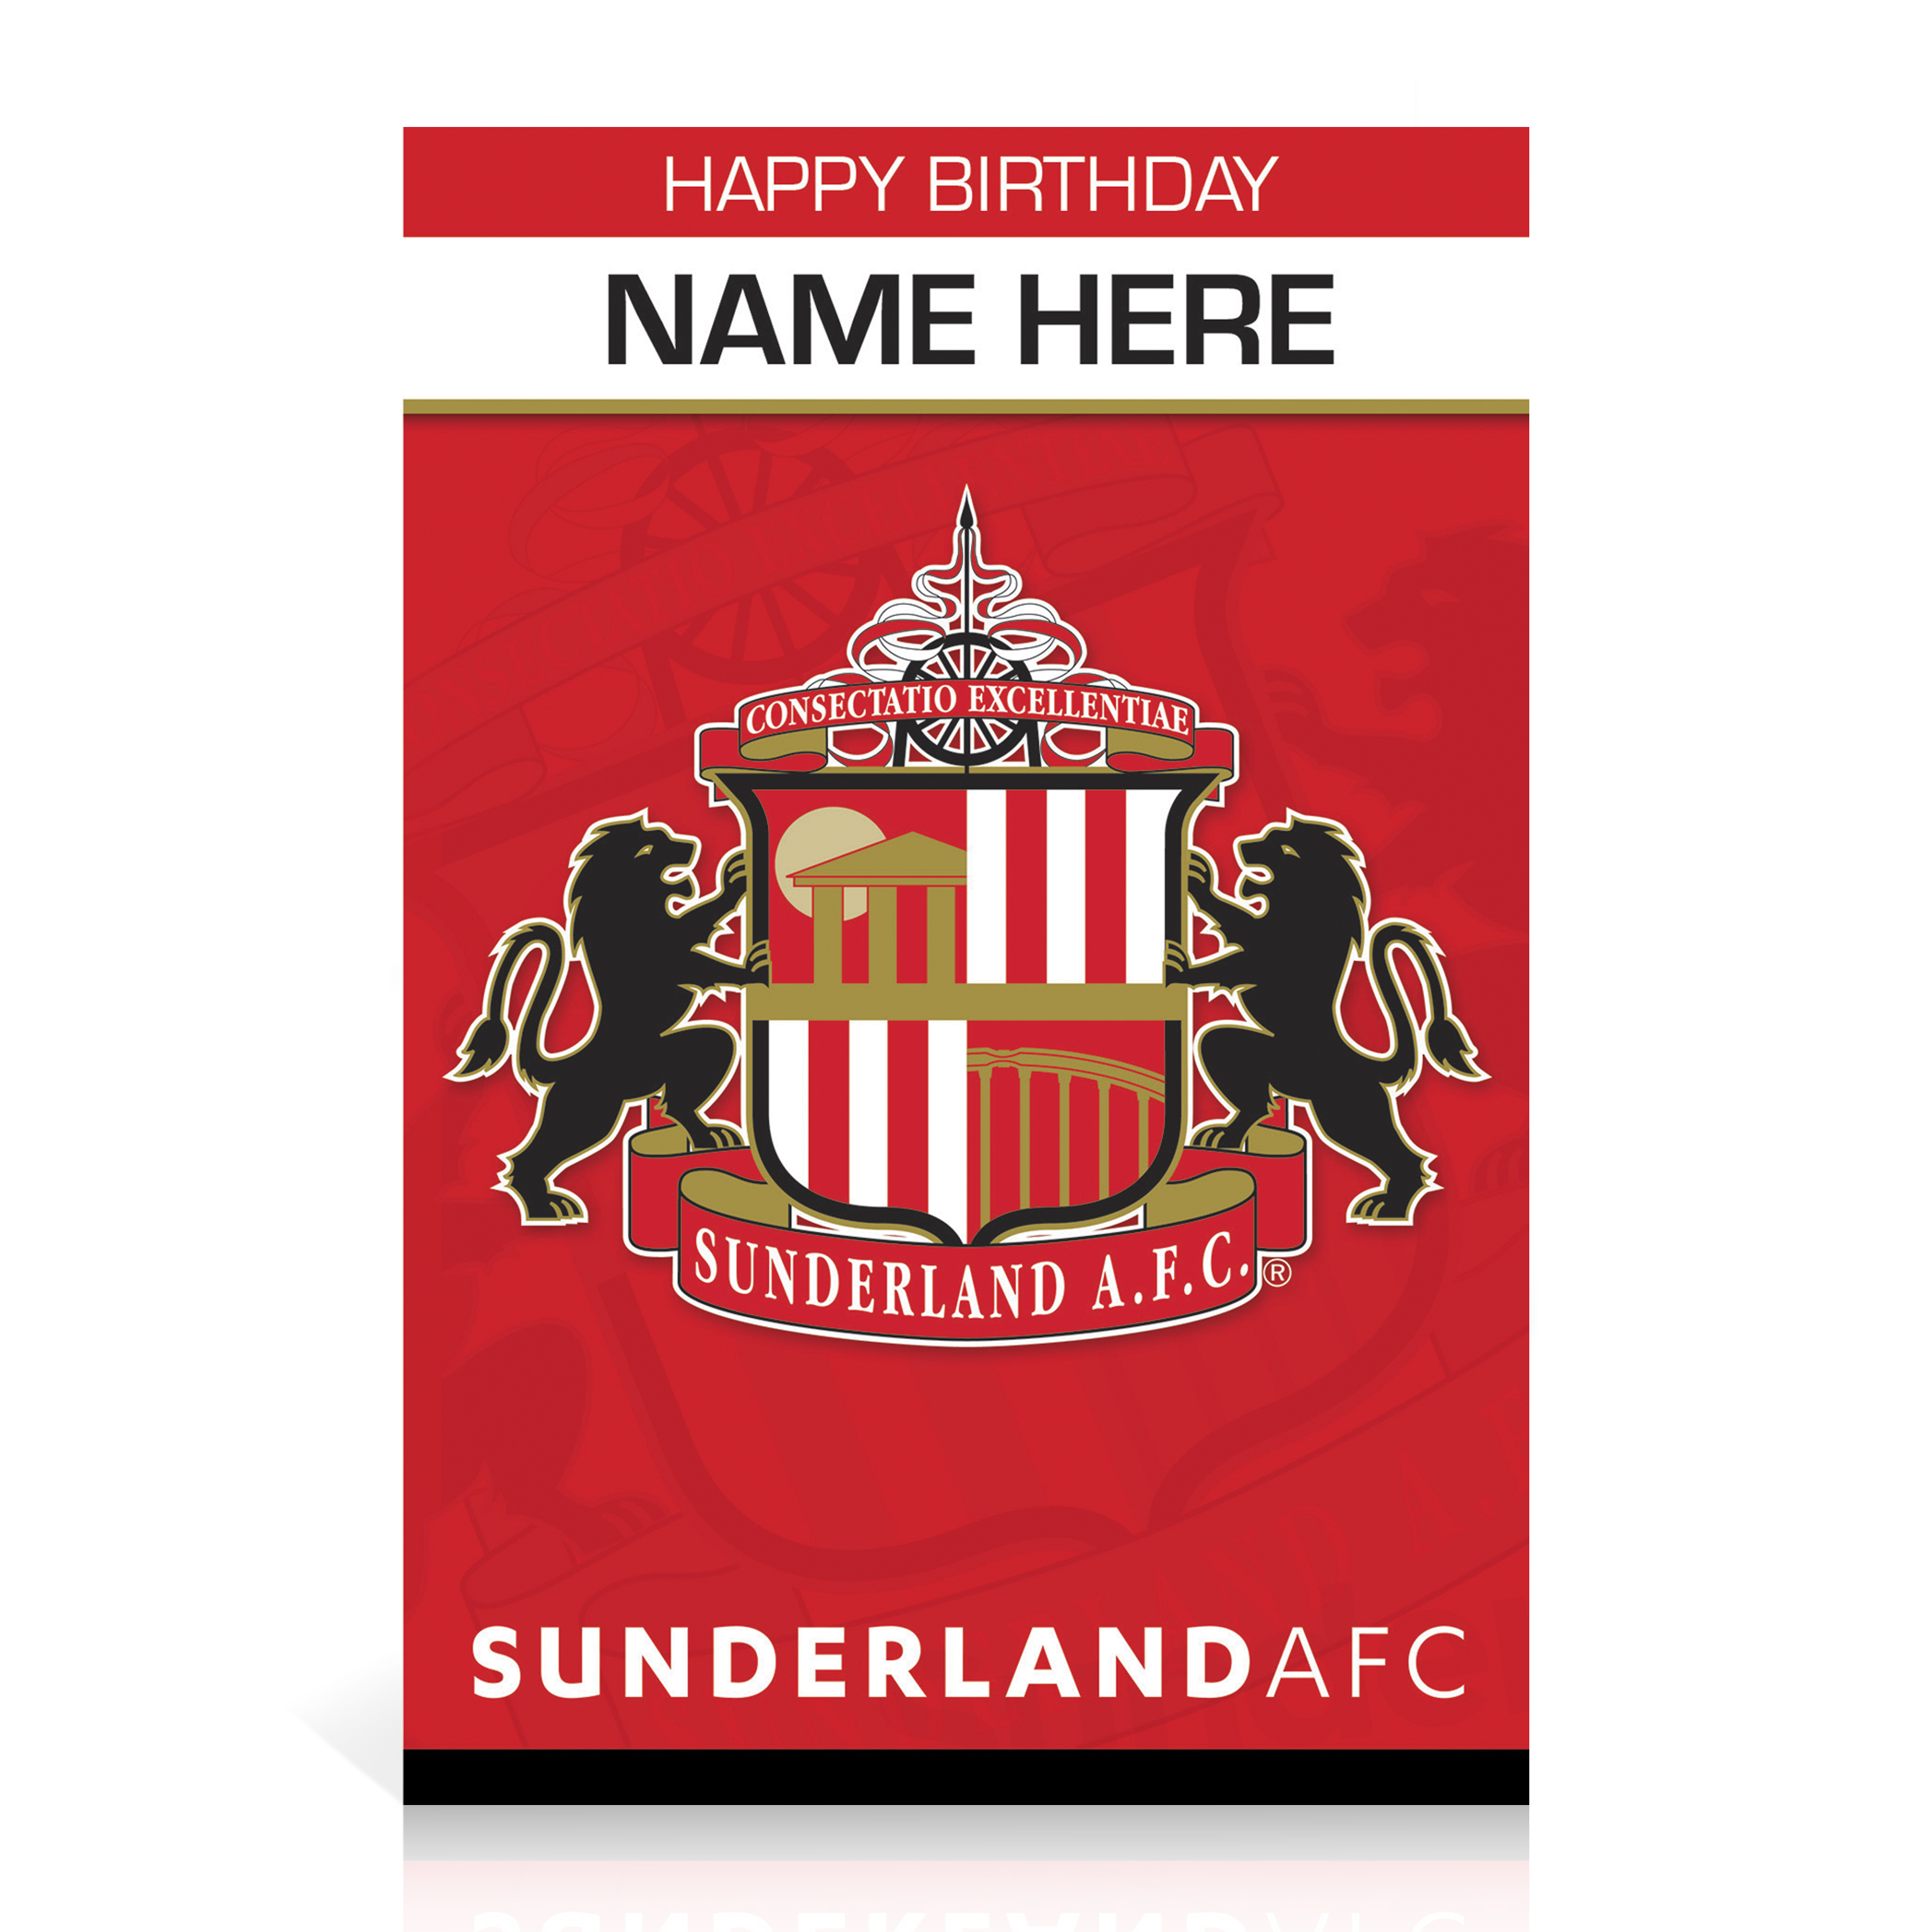 Sunderland  Personalised Happy Birthday Card - Crest